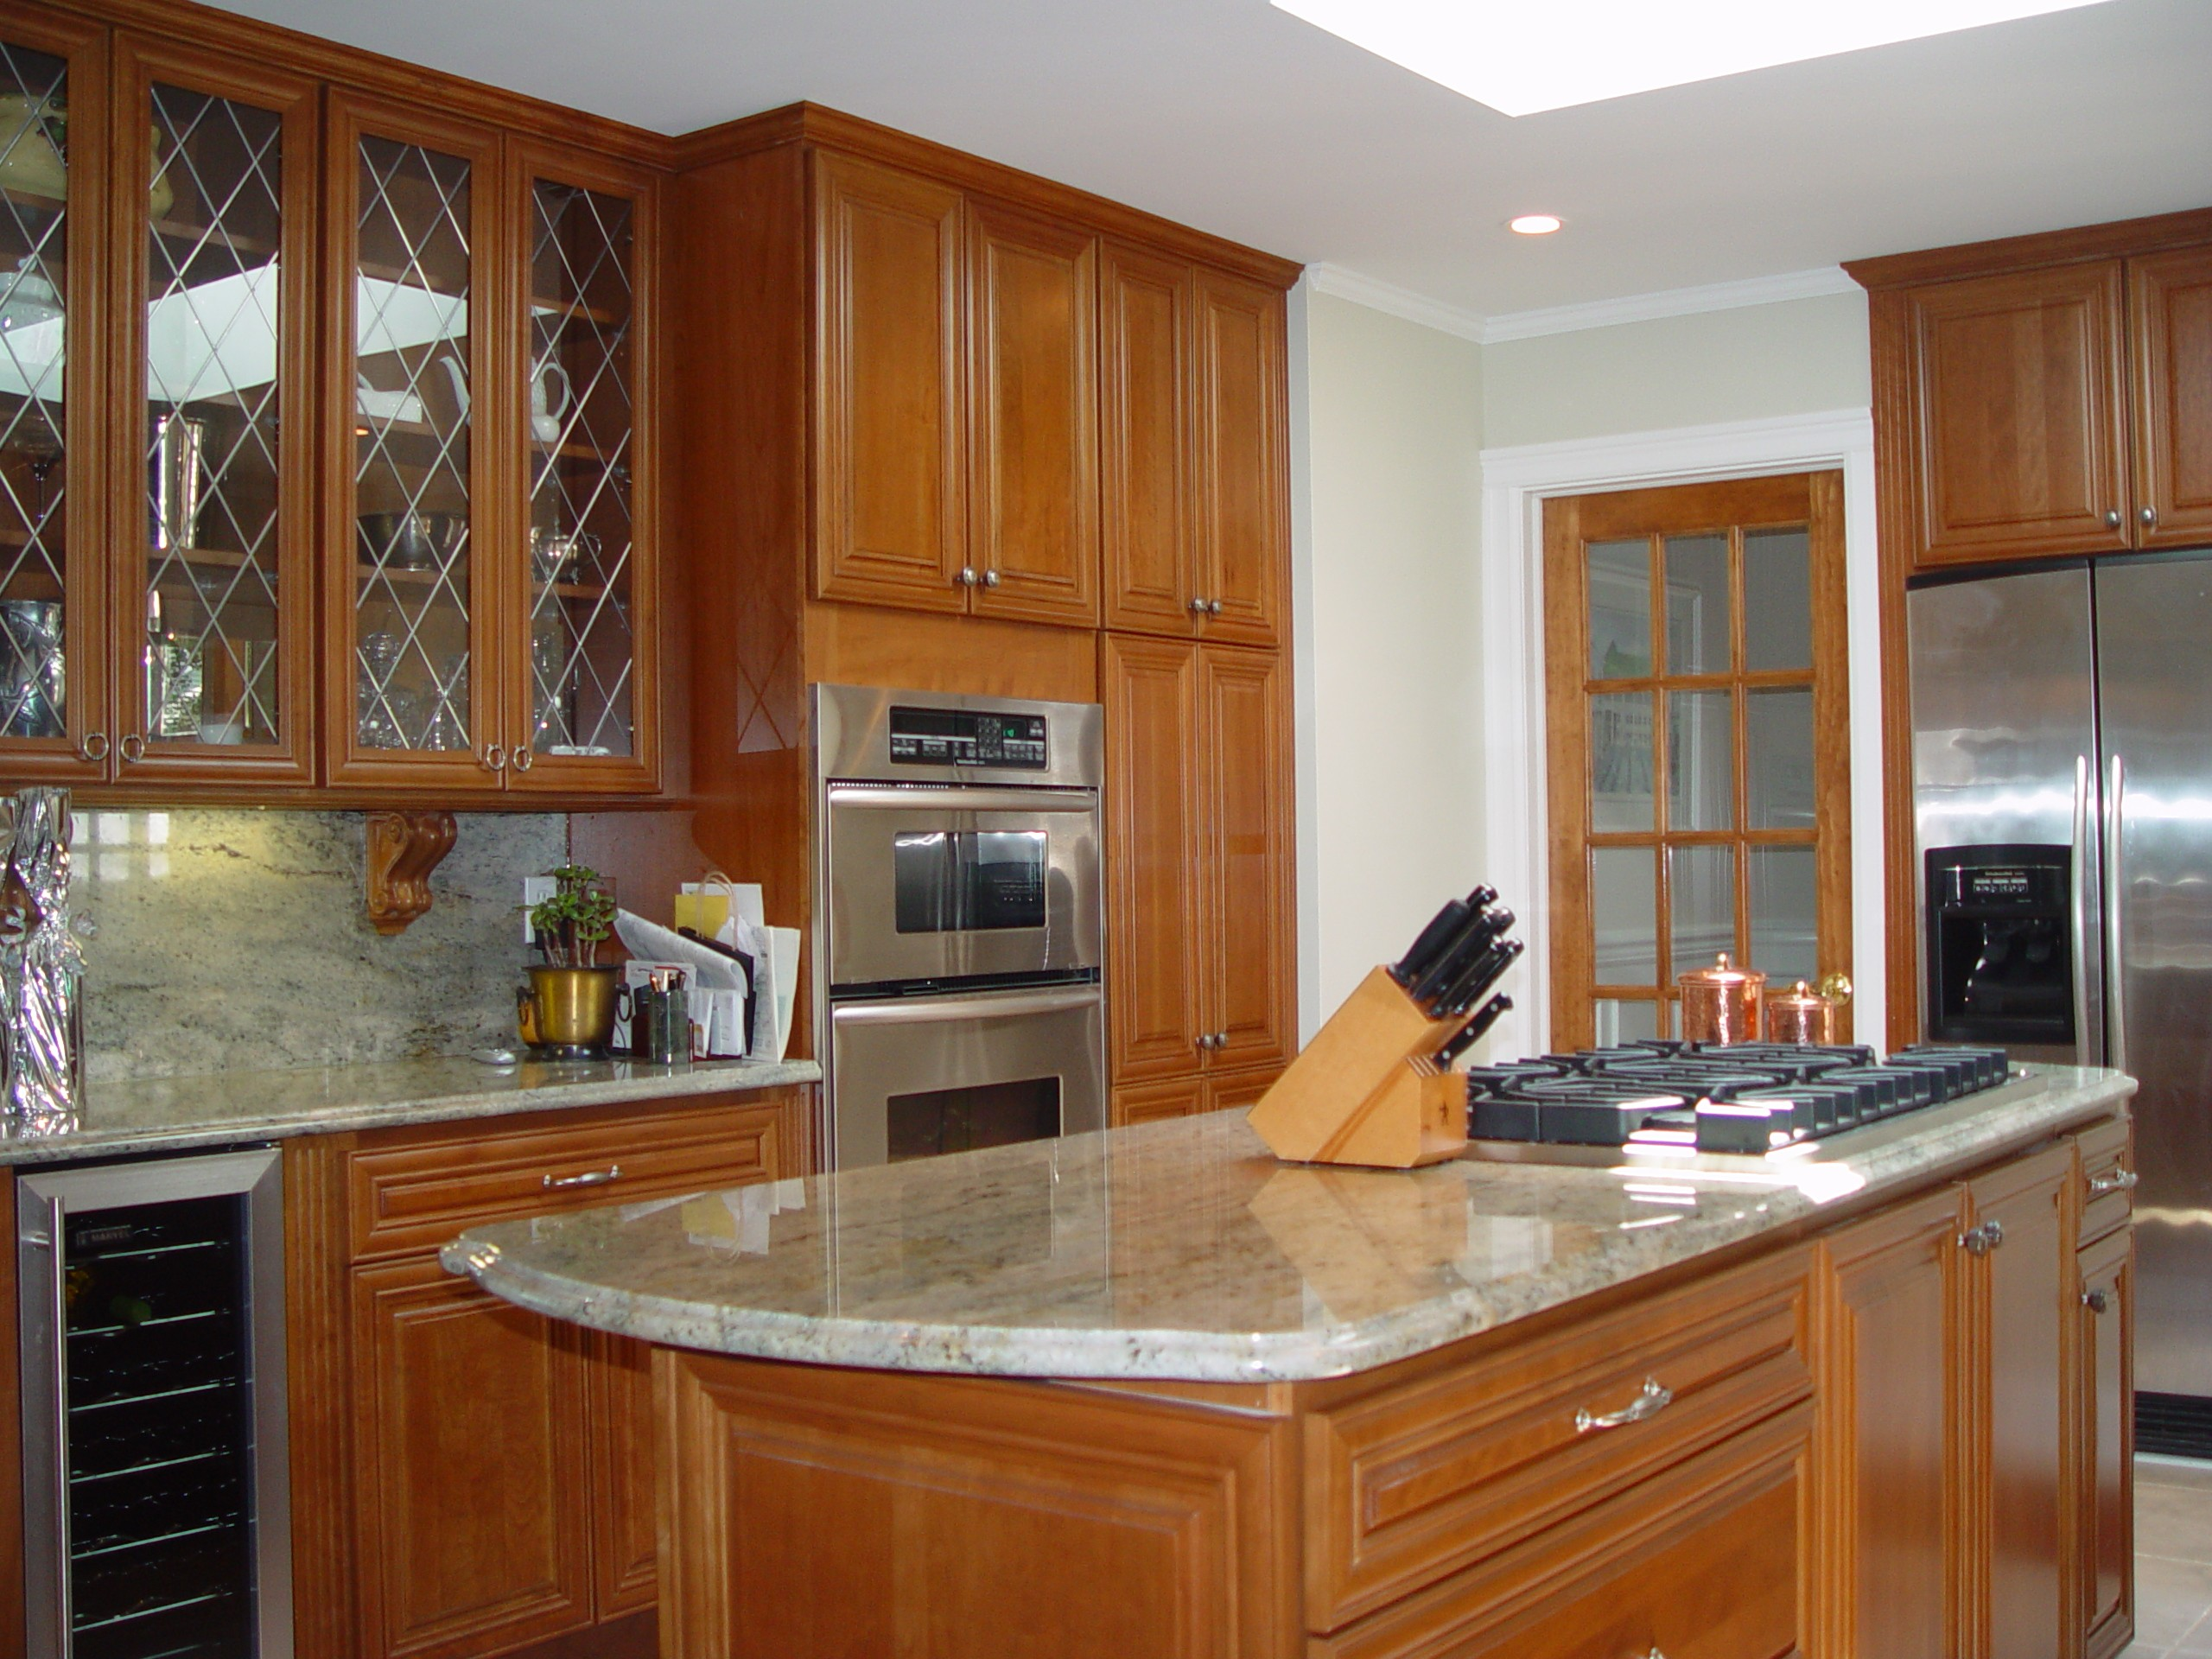 kitchen remodel design cost. Monmouth County Kitchen Remodel Design Build NJ Pricing Guide for Your Next